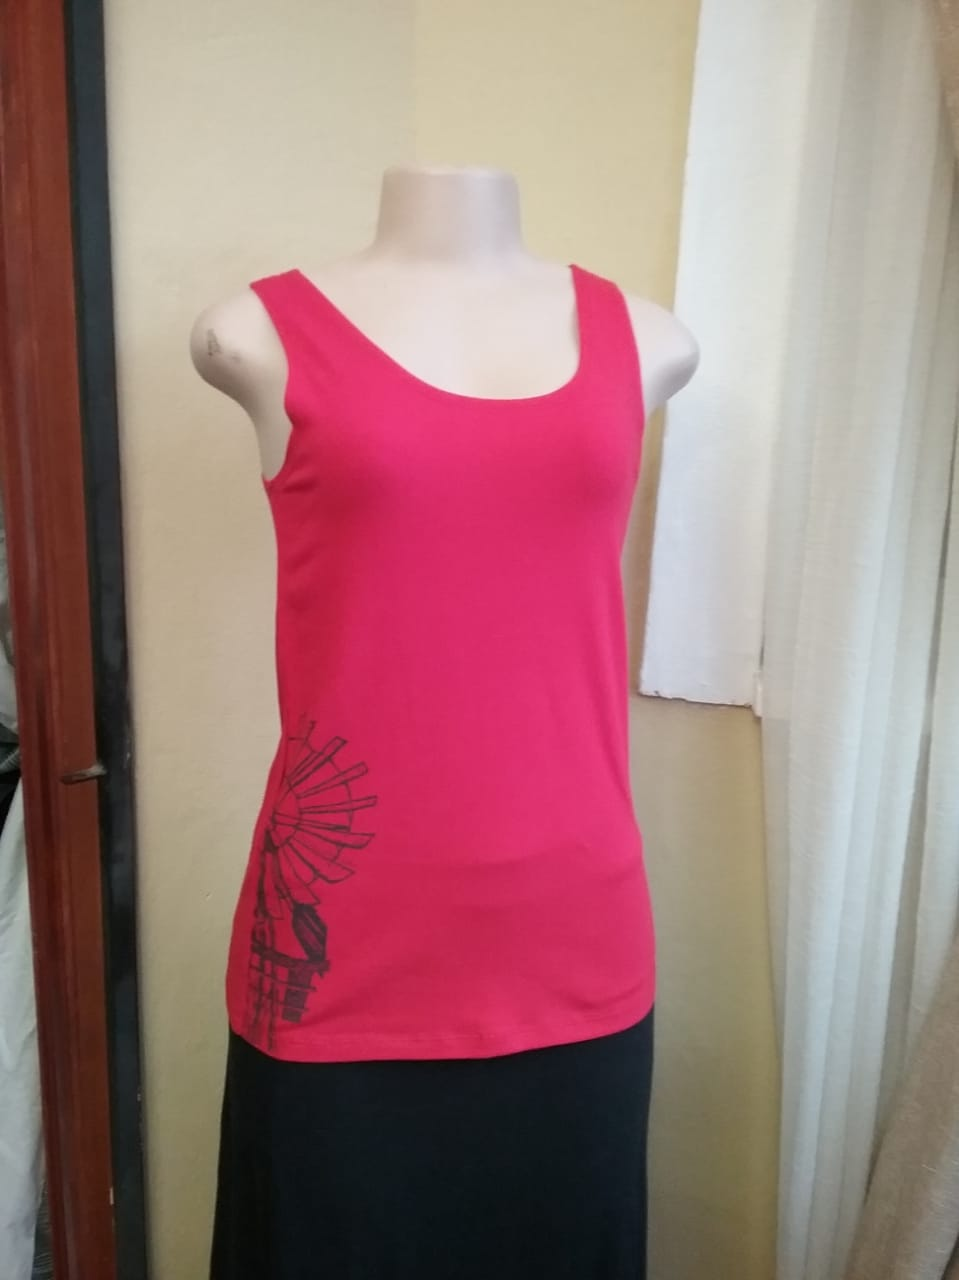 Tank top Red with Windmill print